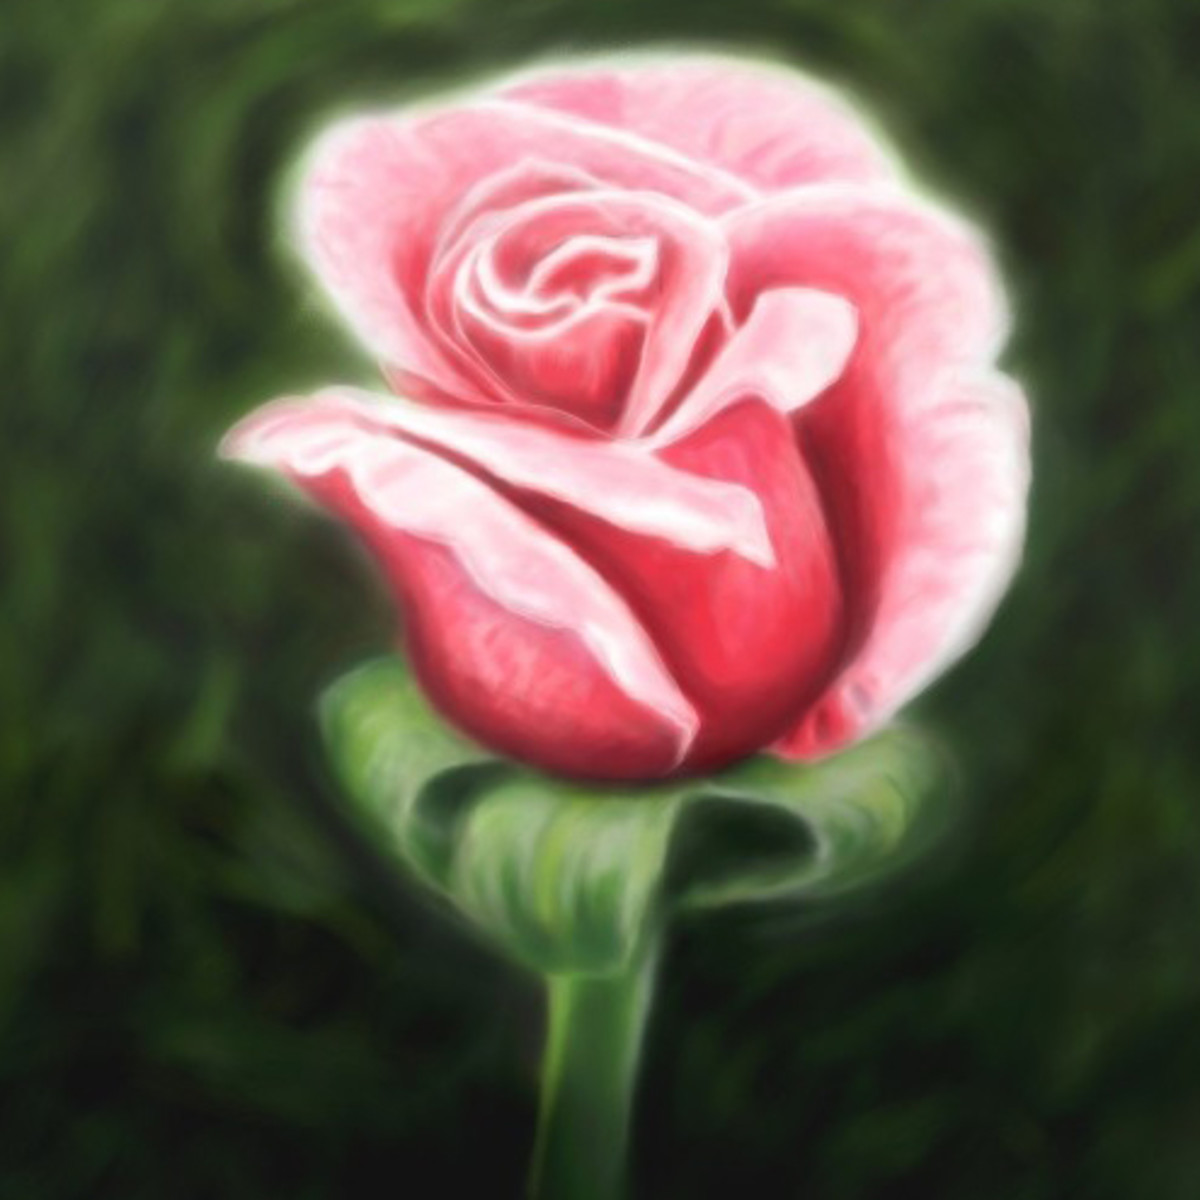 A rose bud offered to God